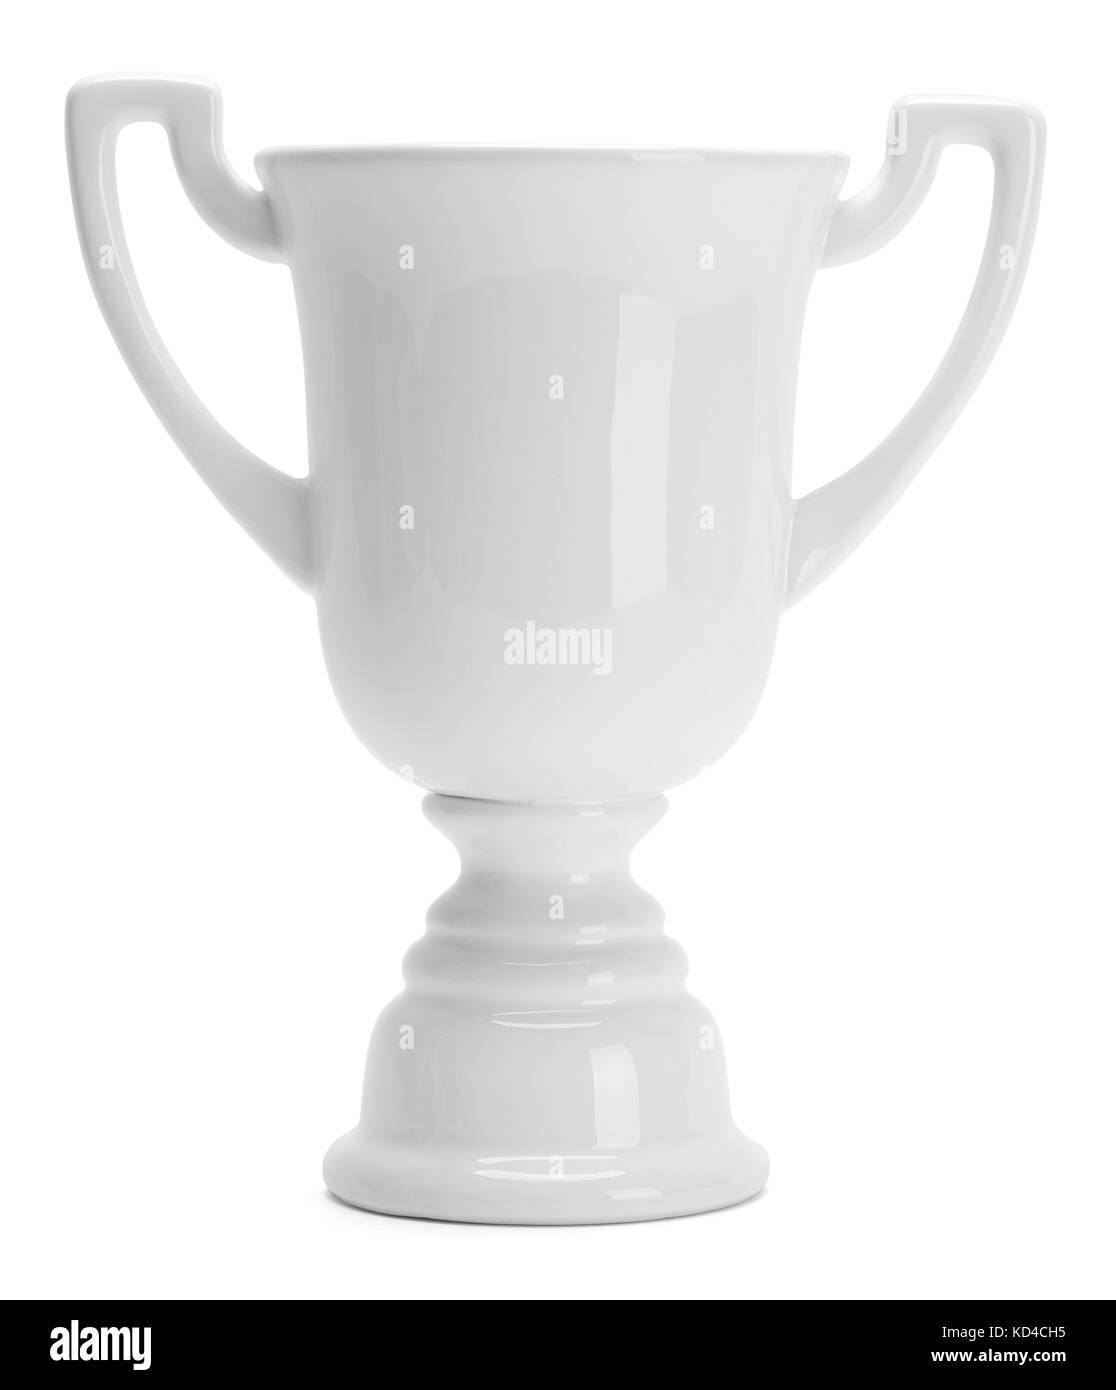 Ceramic White Trophy Cup Isolated on White Background. - Stock Image